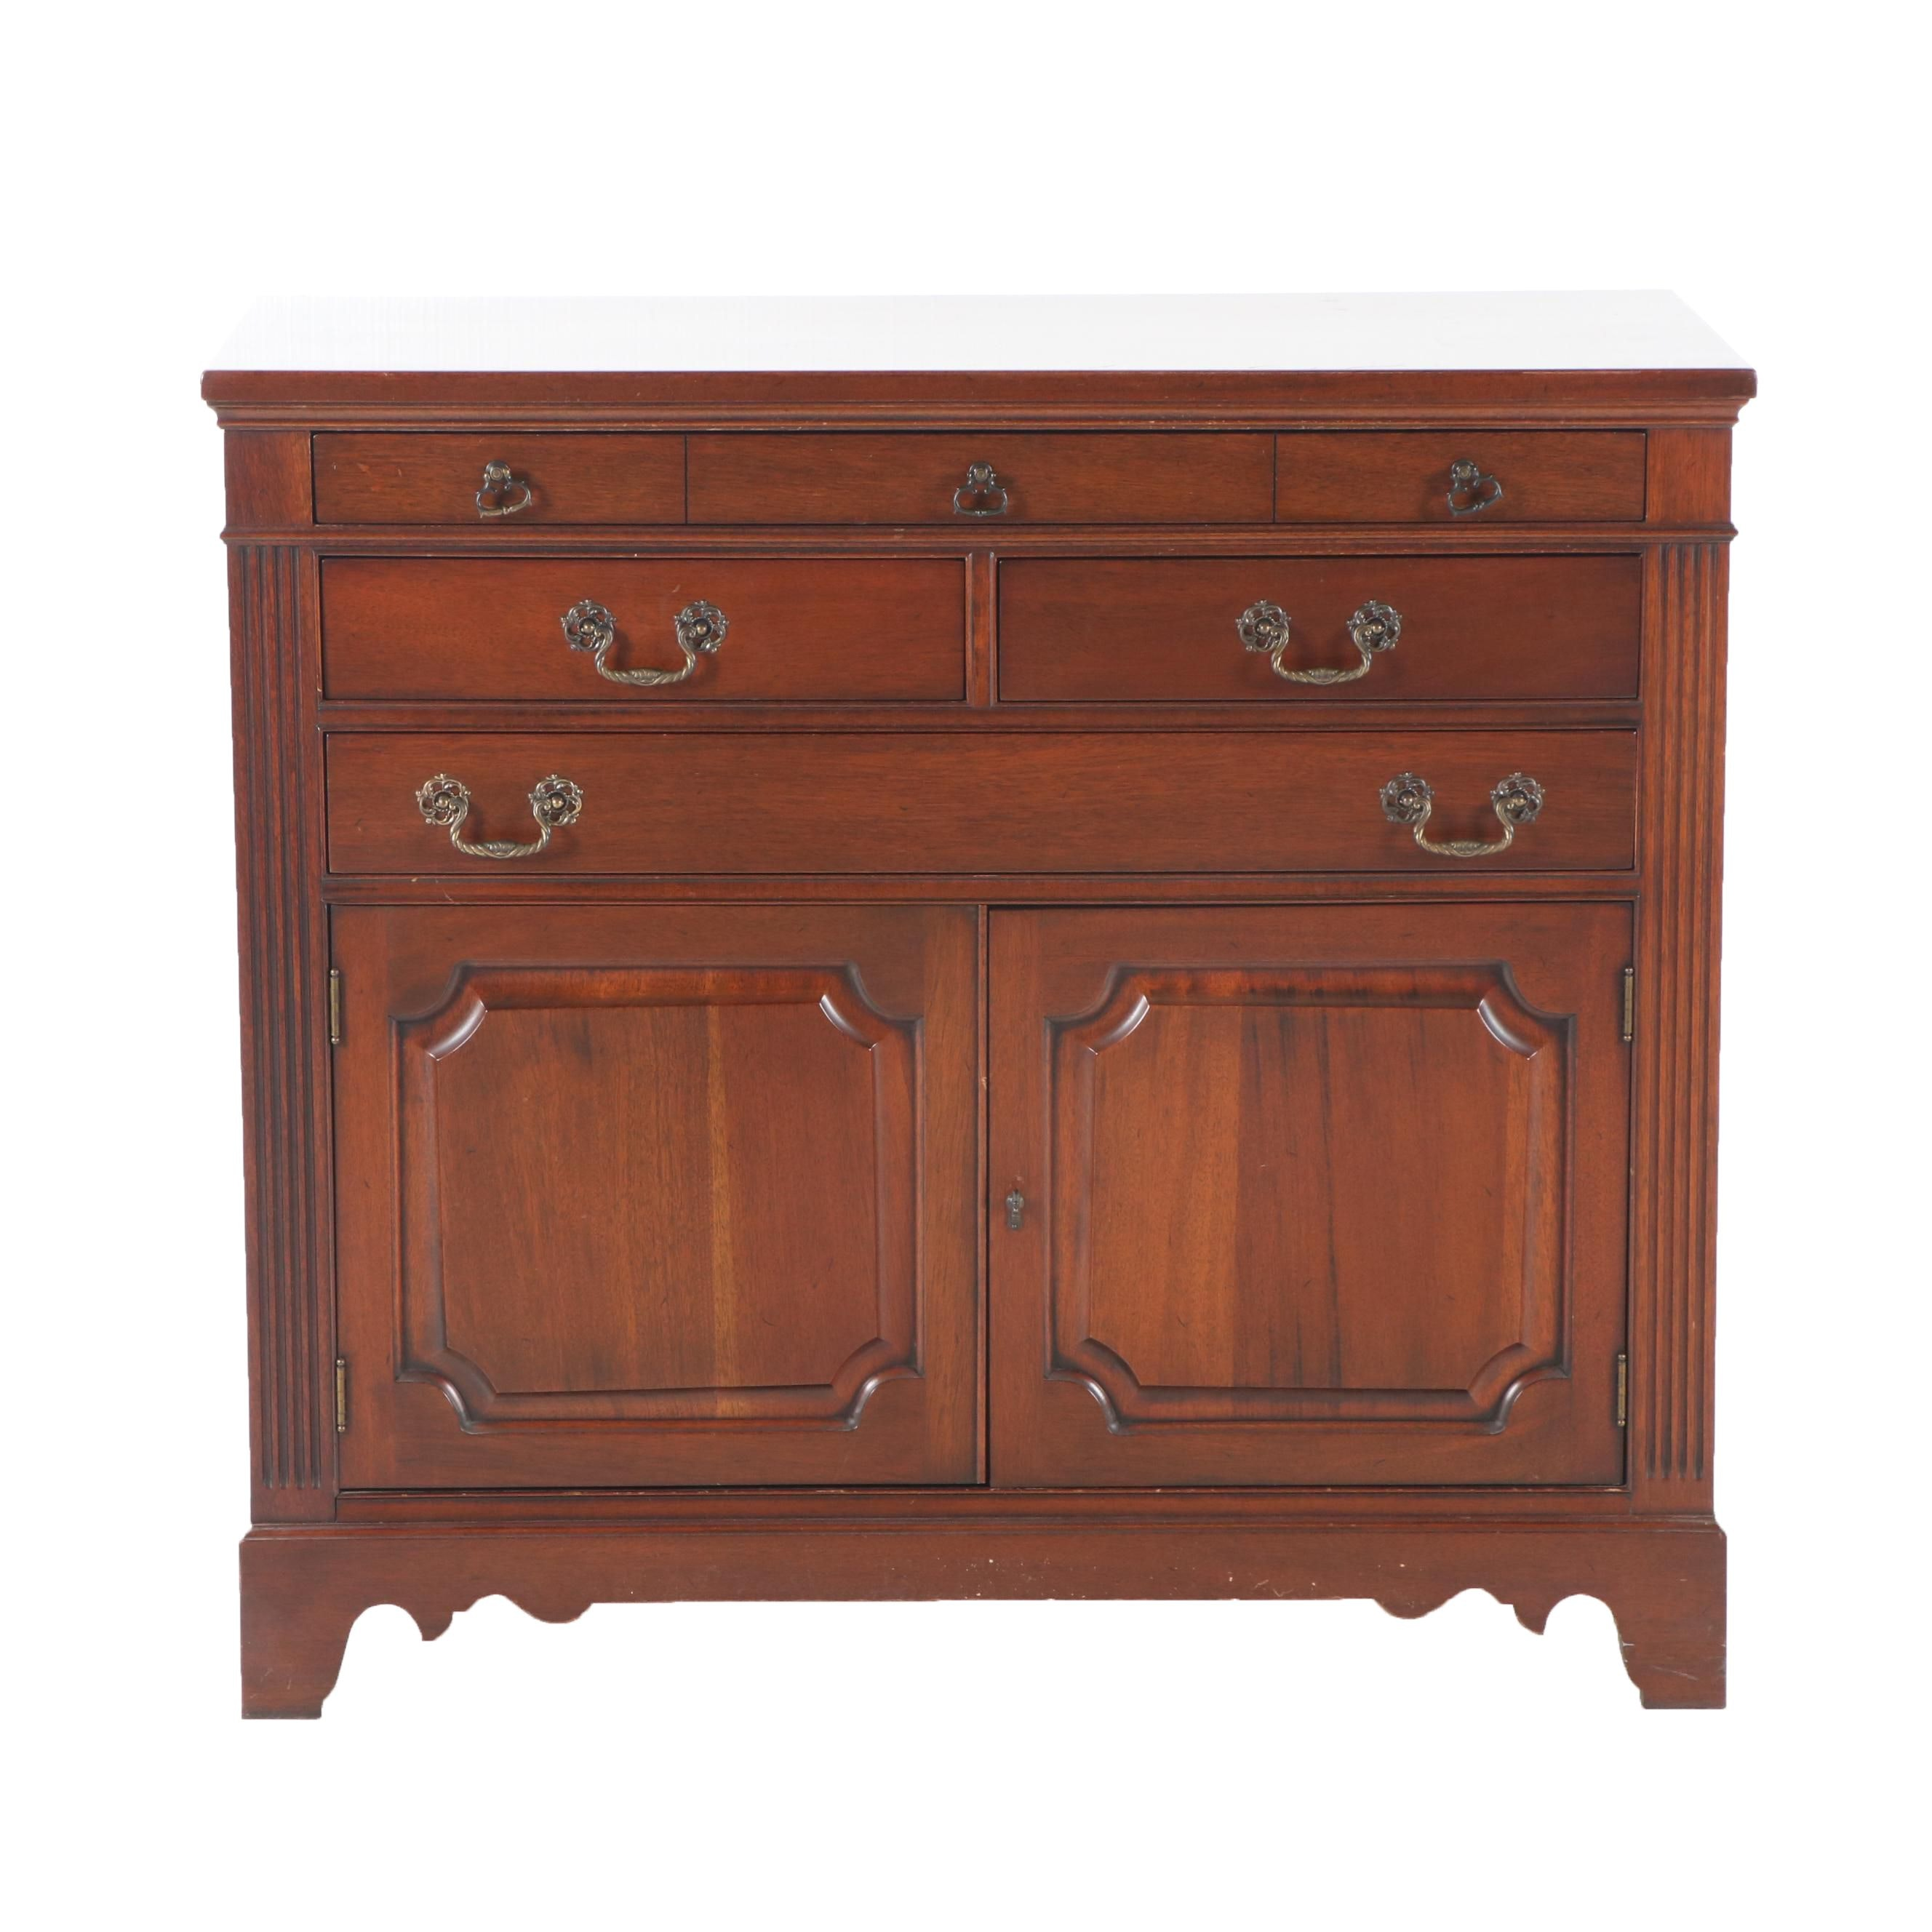 Mahogany Buffet Cabinet for Georgetown Galleries by Ritter